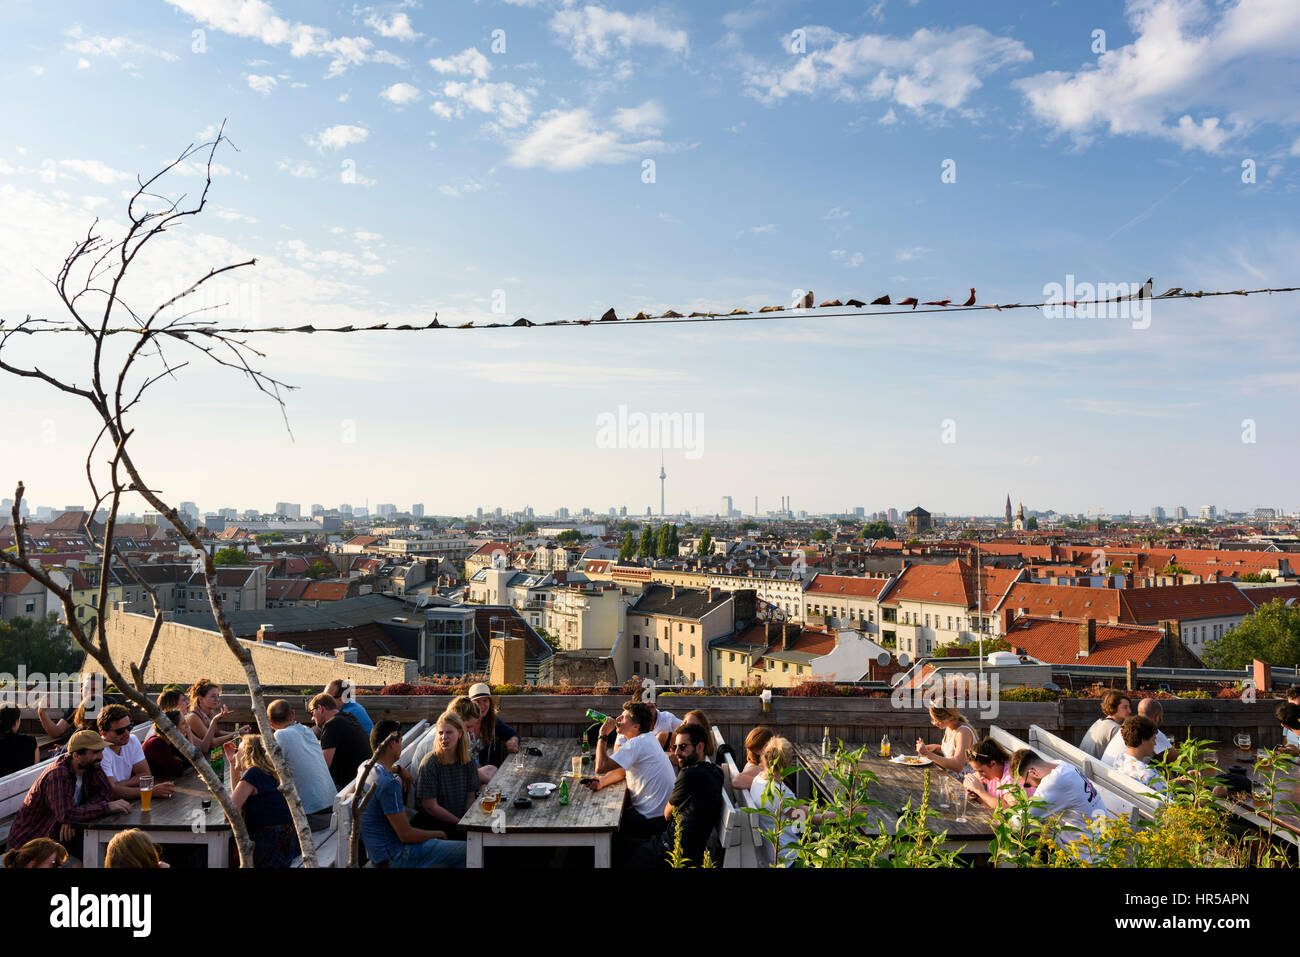 Berlin. Germany. People enjoying the view of Berlin's skyline from the Klunkerkranich rooftop bar in Neukölln. - Stock Image